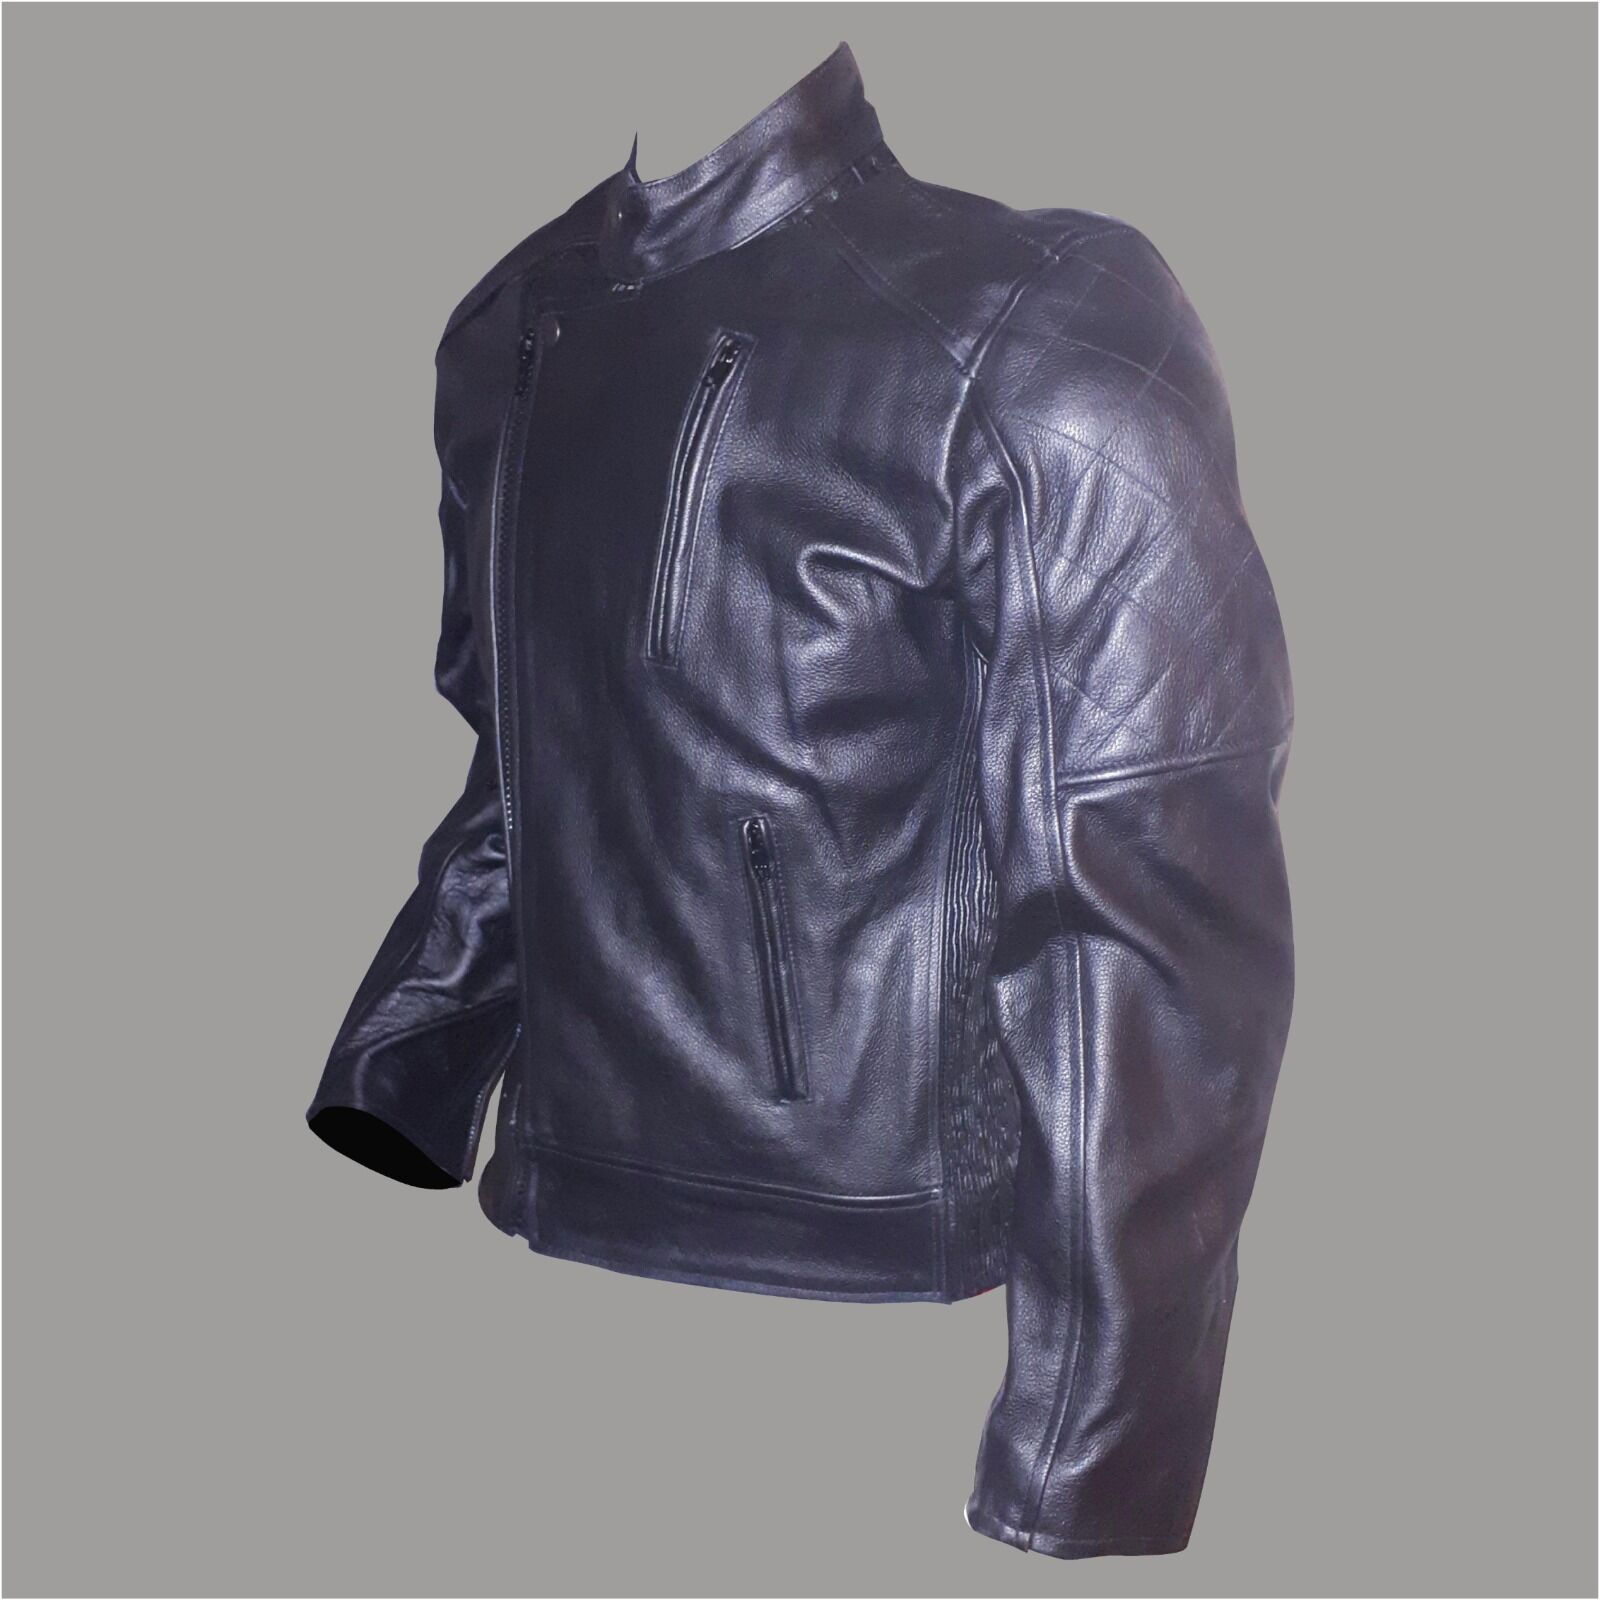 Classic Styled Black Leather Jacket